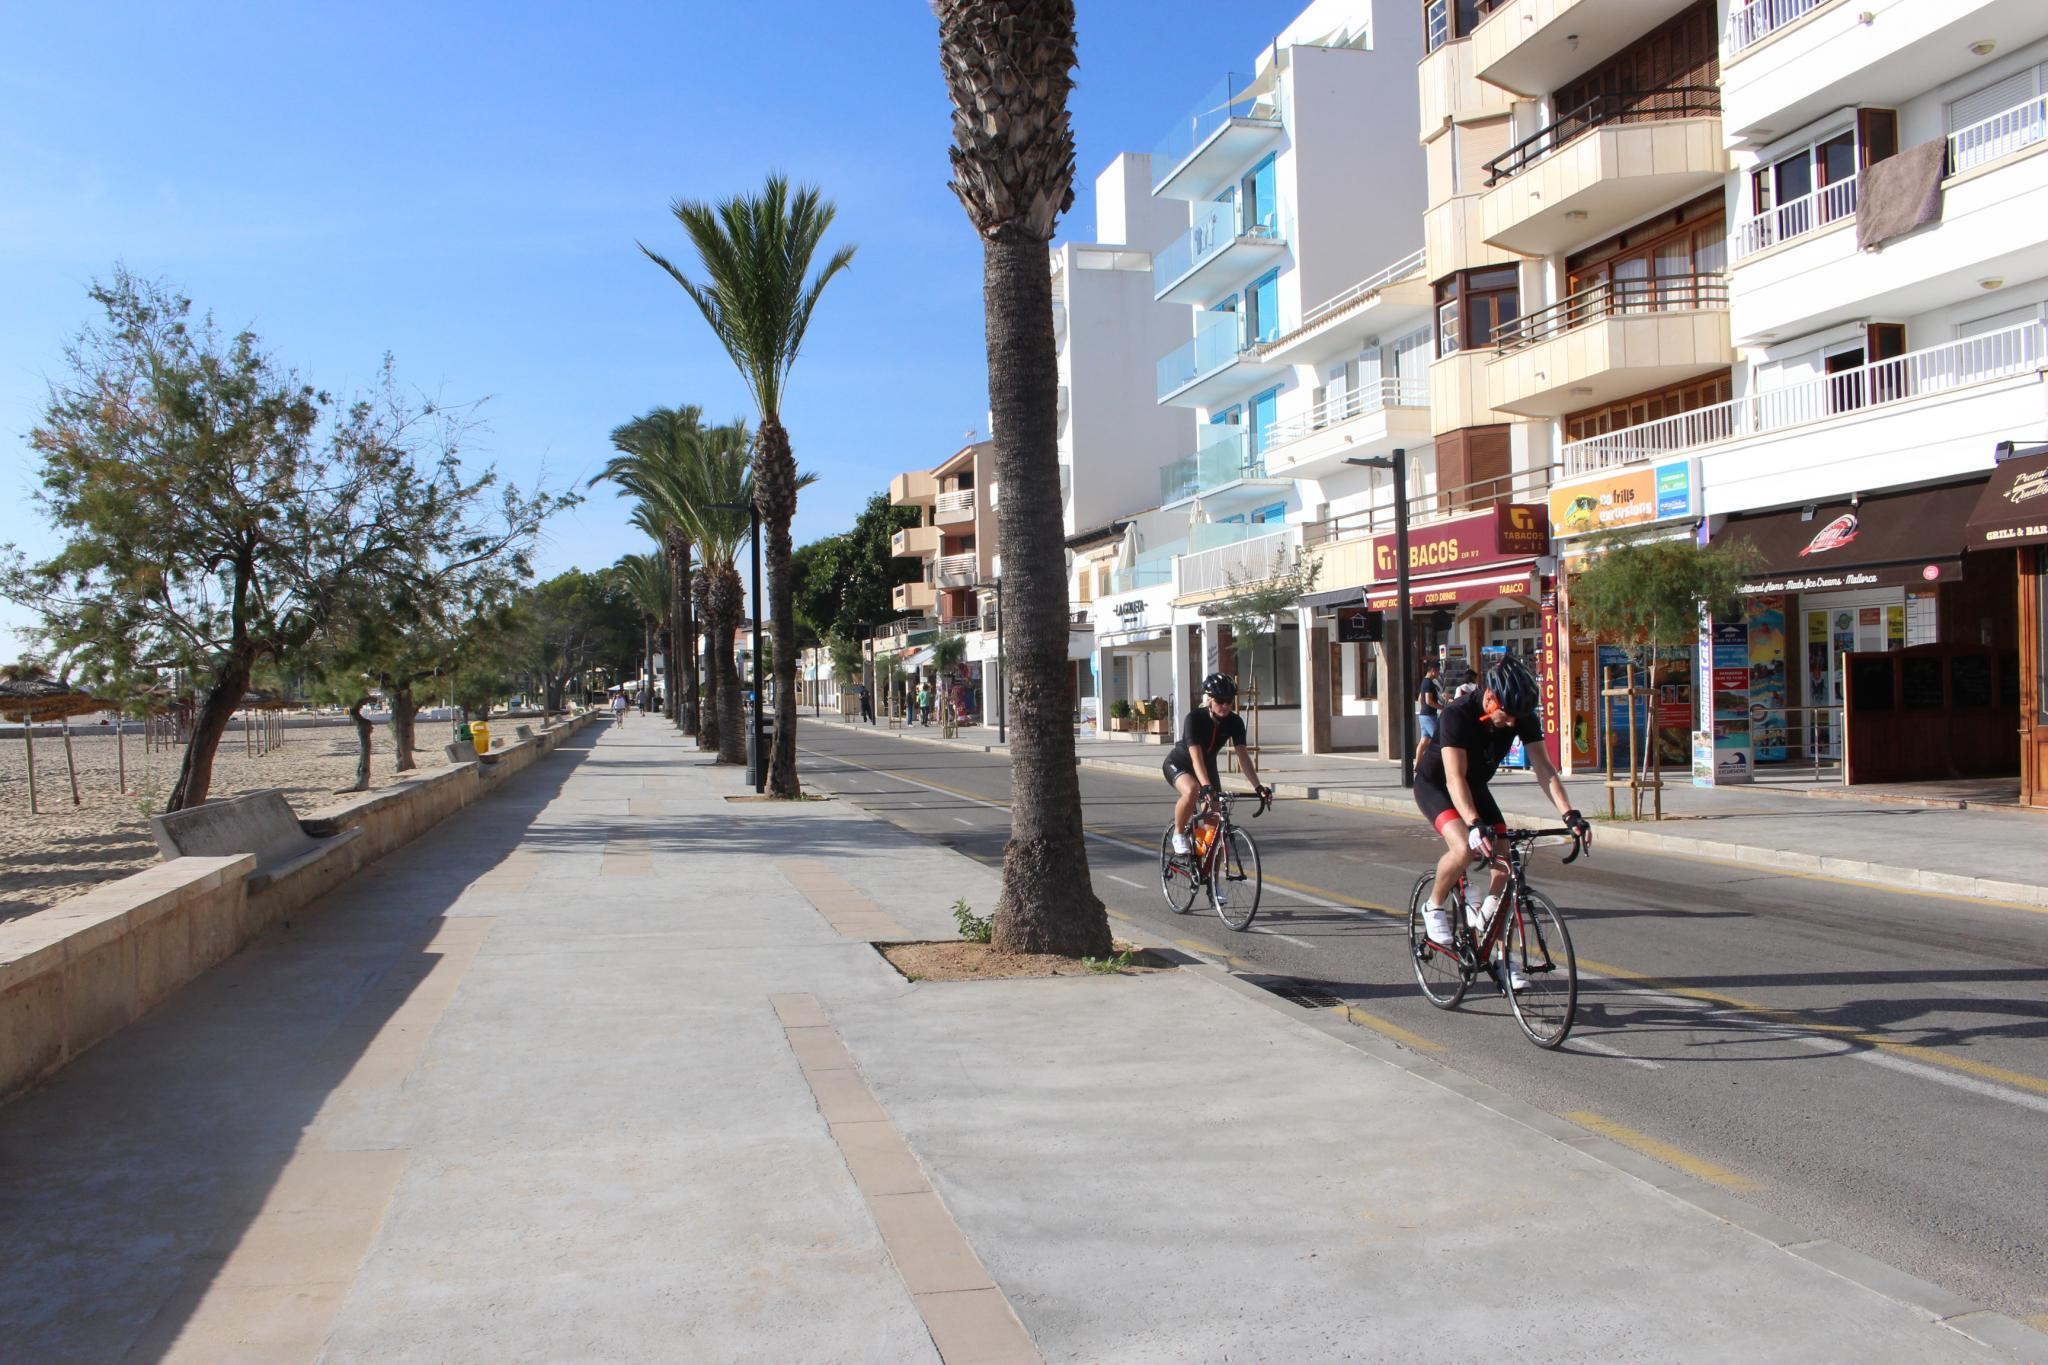 The semi-pedestrianisation scheme in Puerto Pollensa a few years ago